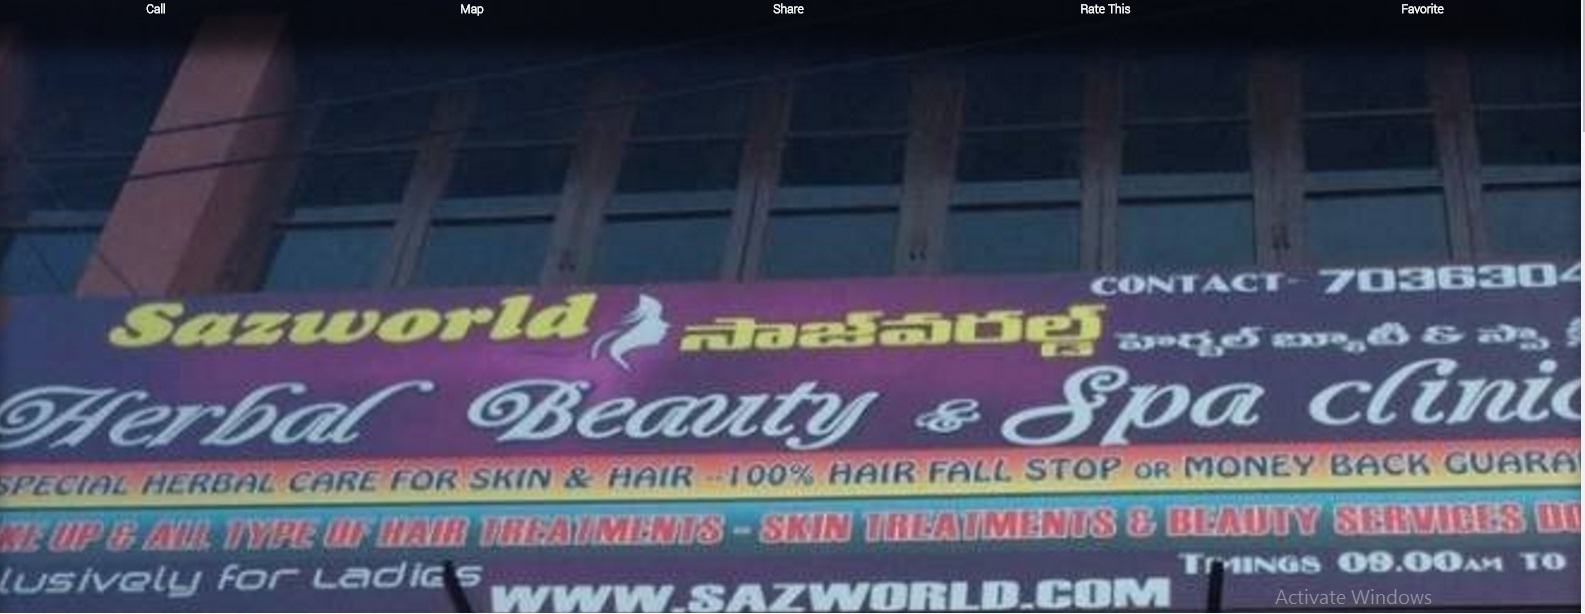 sazworld Herbal Beauty Clinic